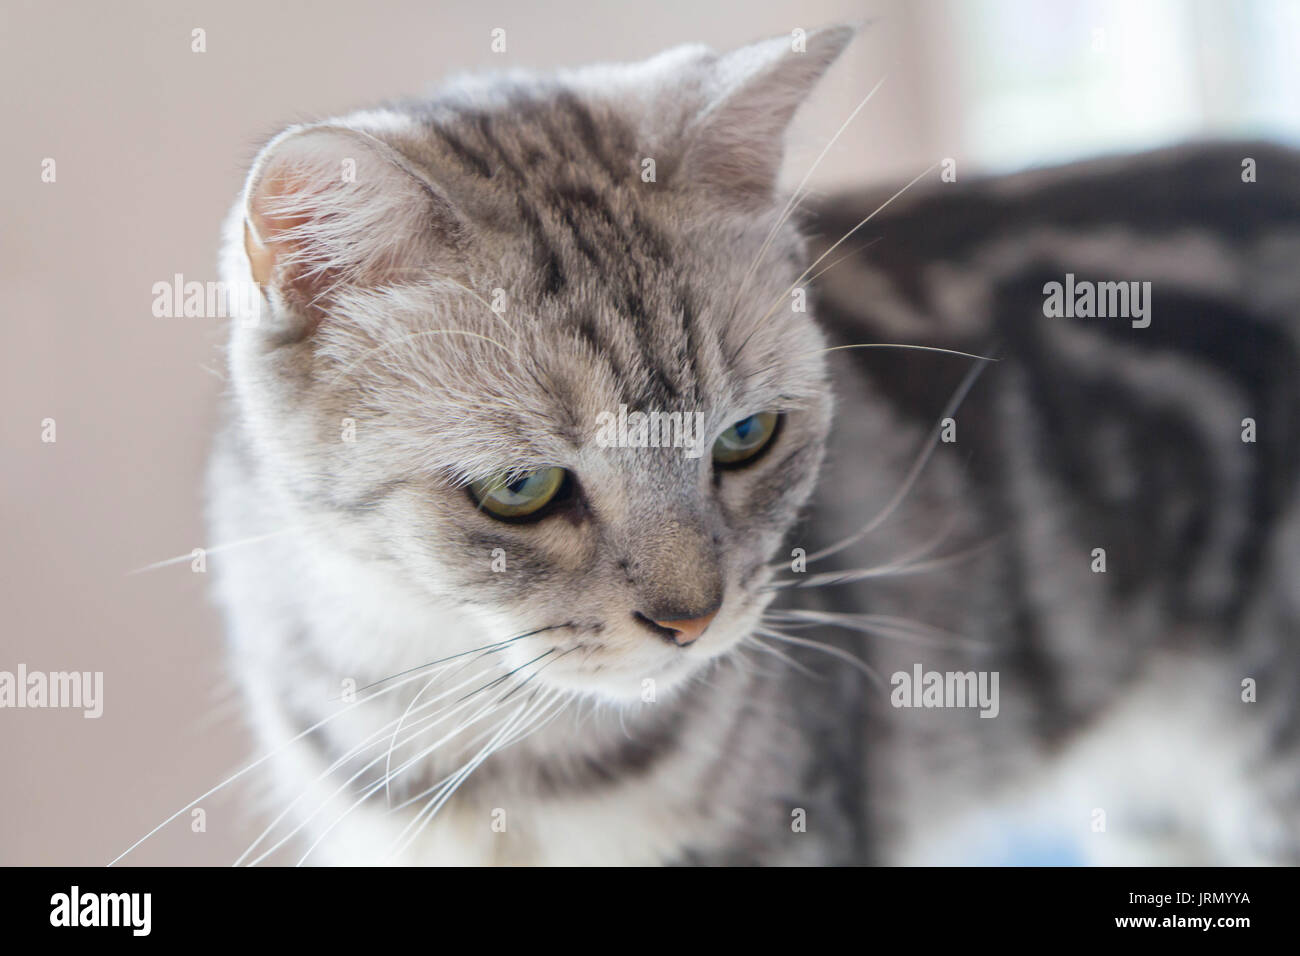 American Shorthair Stock Photos & American Shorthair Stock Images ...